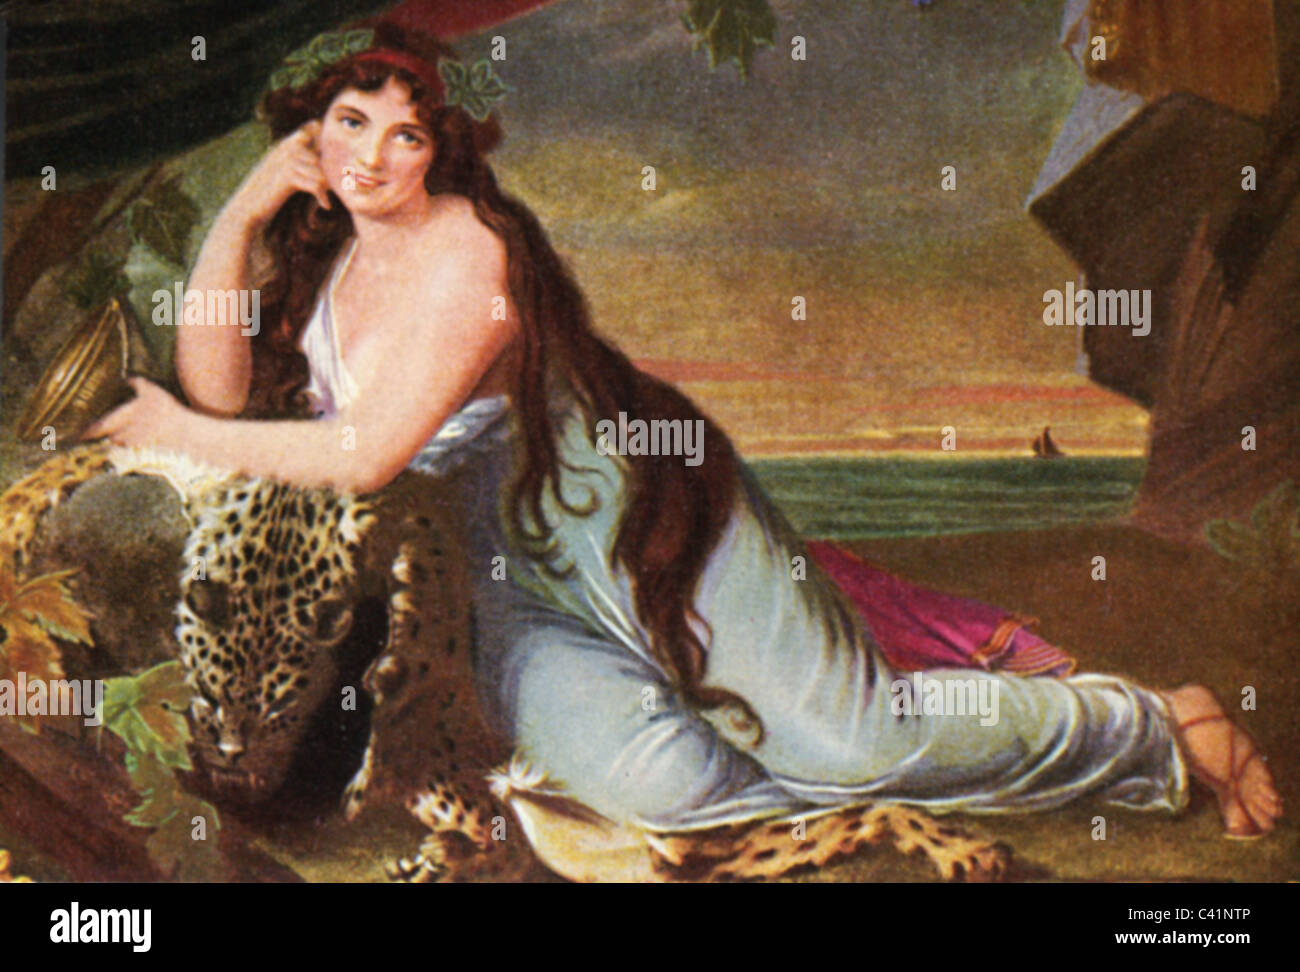 Hamilton, Lady Emma, 1761 - 15.1.1815, as Ariadne, colour print after ministure by Henry Bone, 1803, cigarette card, Stock Photo